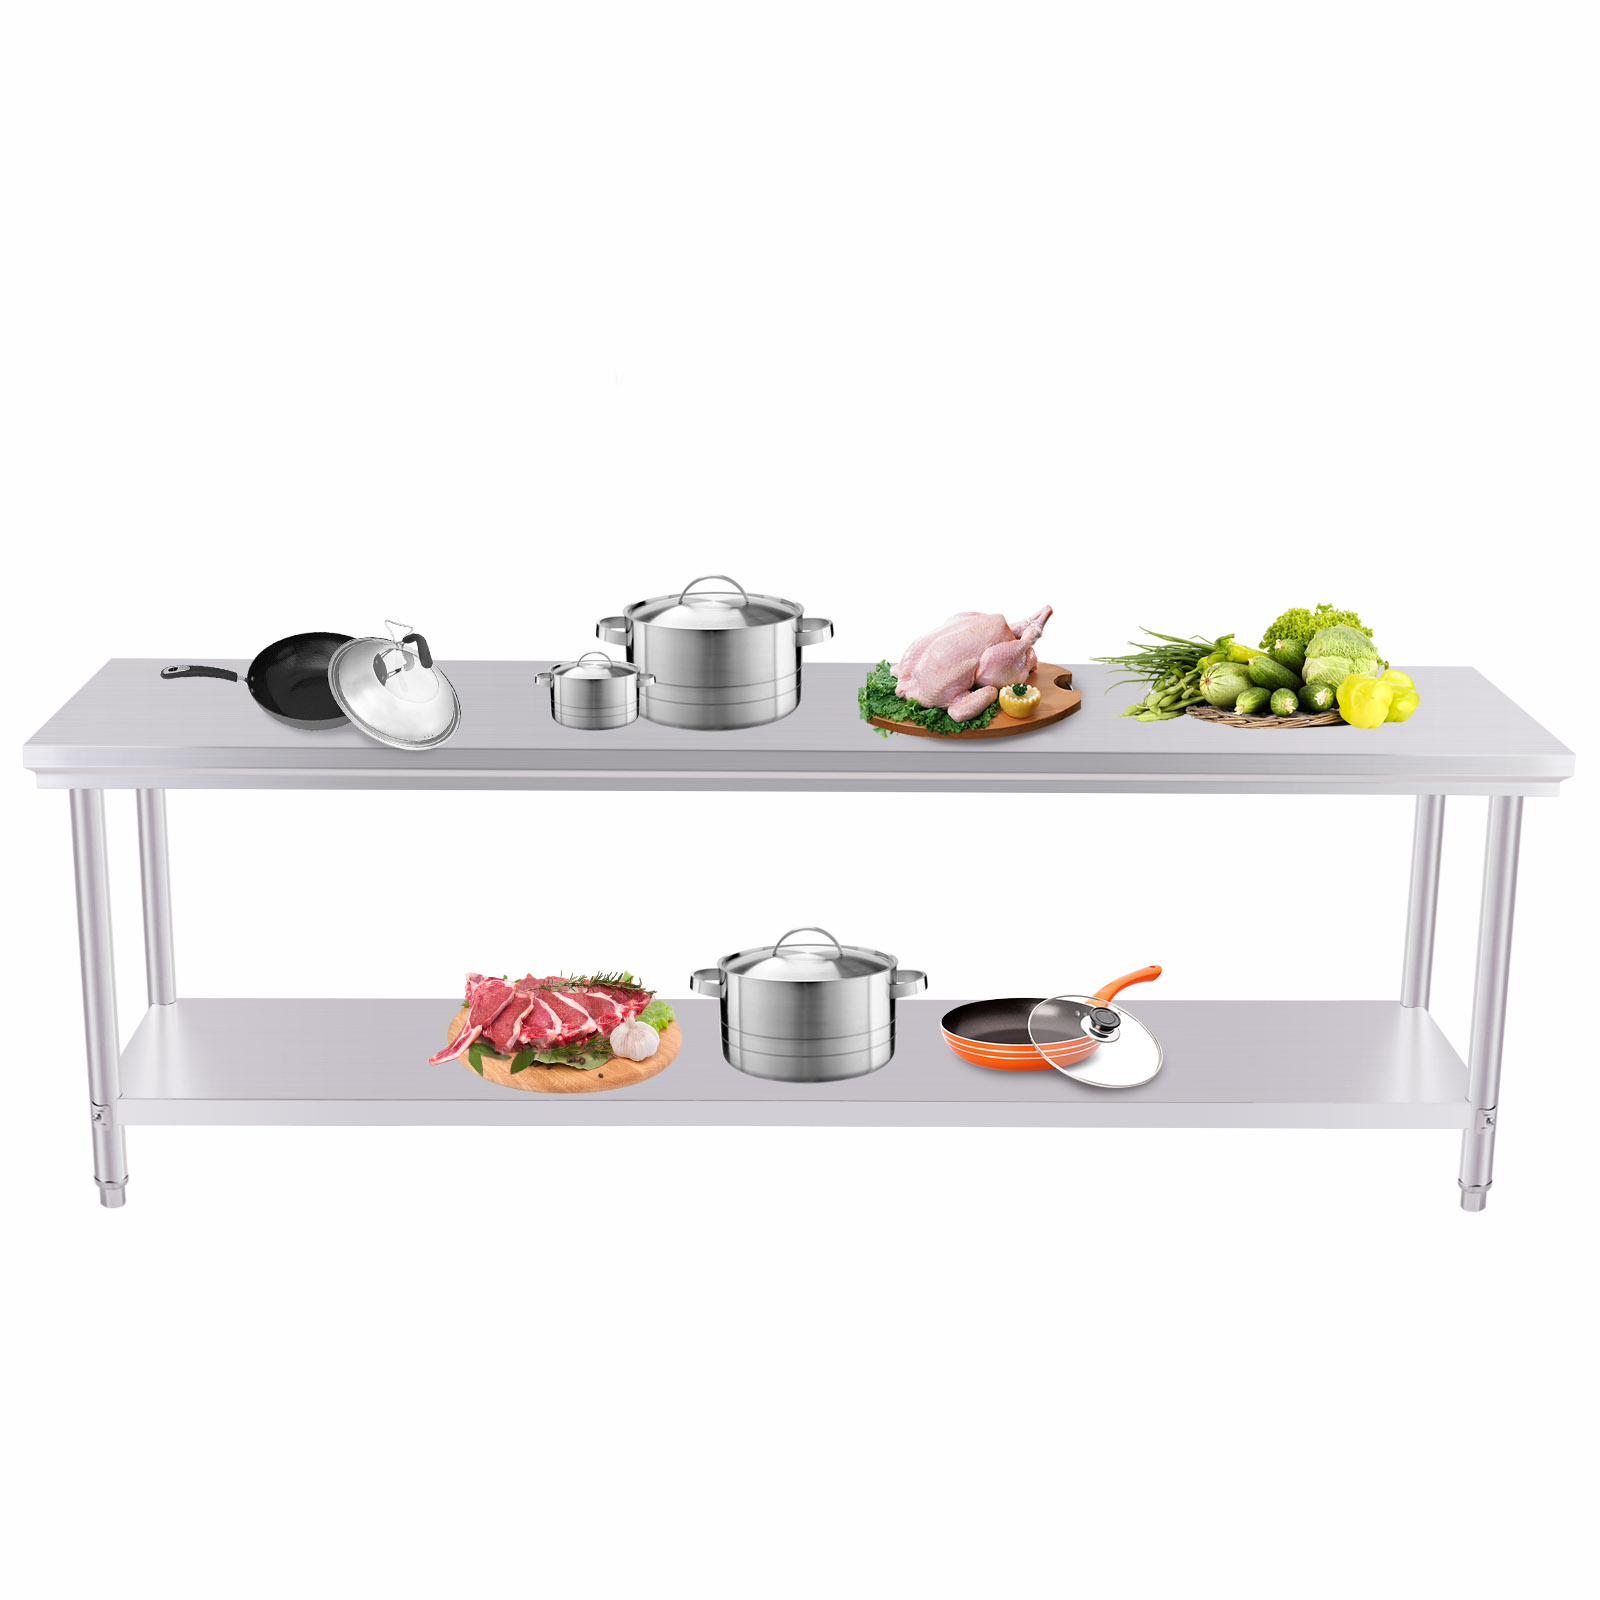 2x8ft Stainless Steel Work Bench Food Prep Kitchen Table Top 60x240cm Uk New Ebay